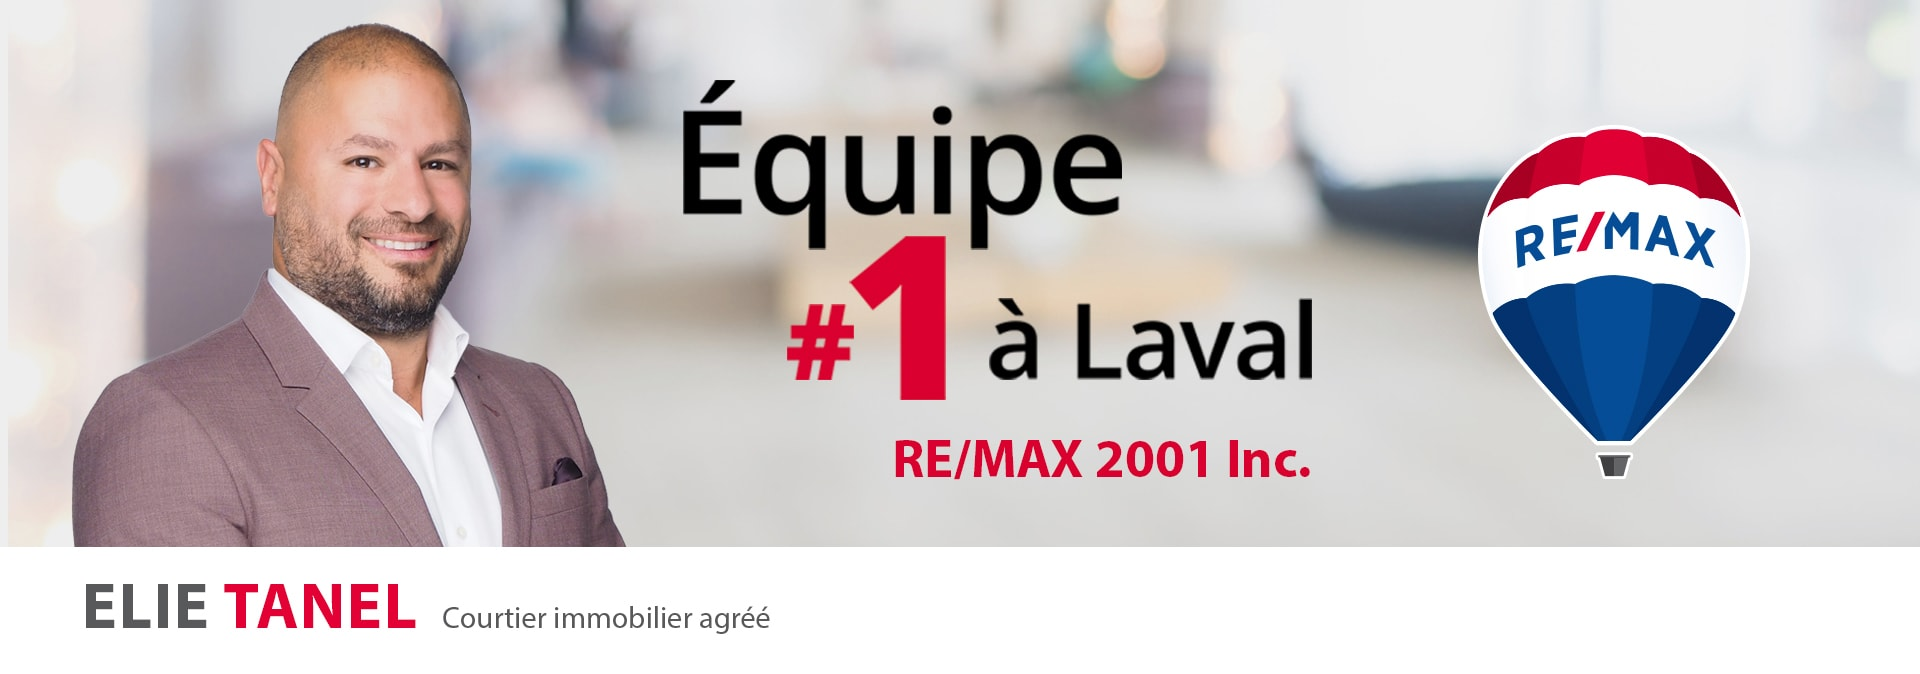 Elie tanel - courtier immobilier  laval RE/MAX 2001